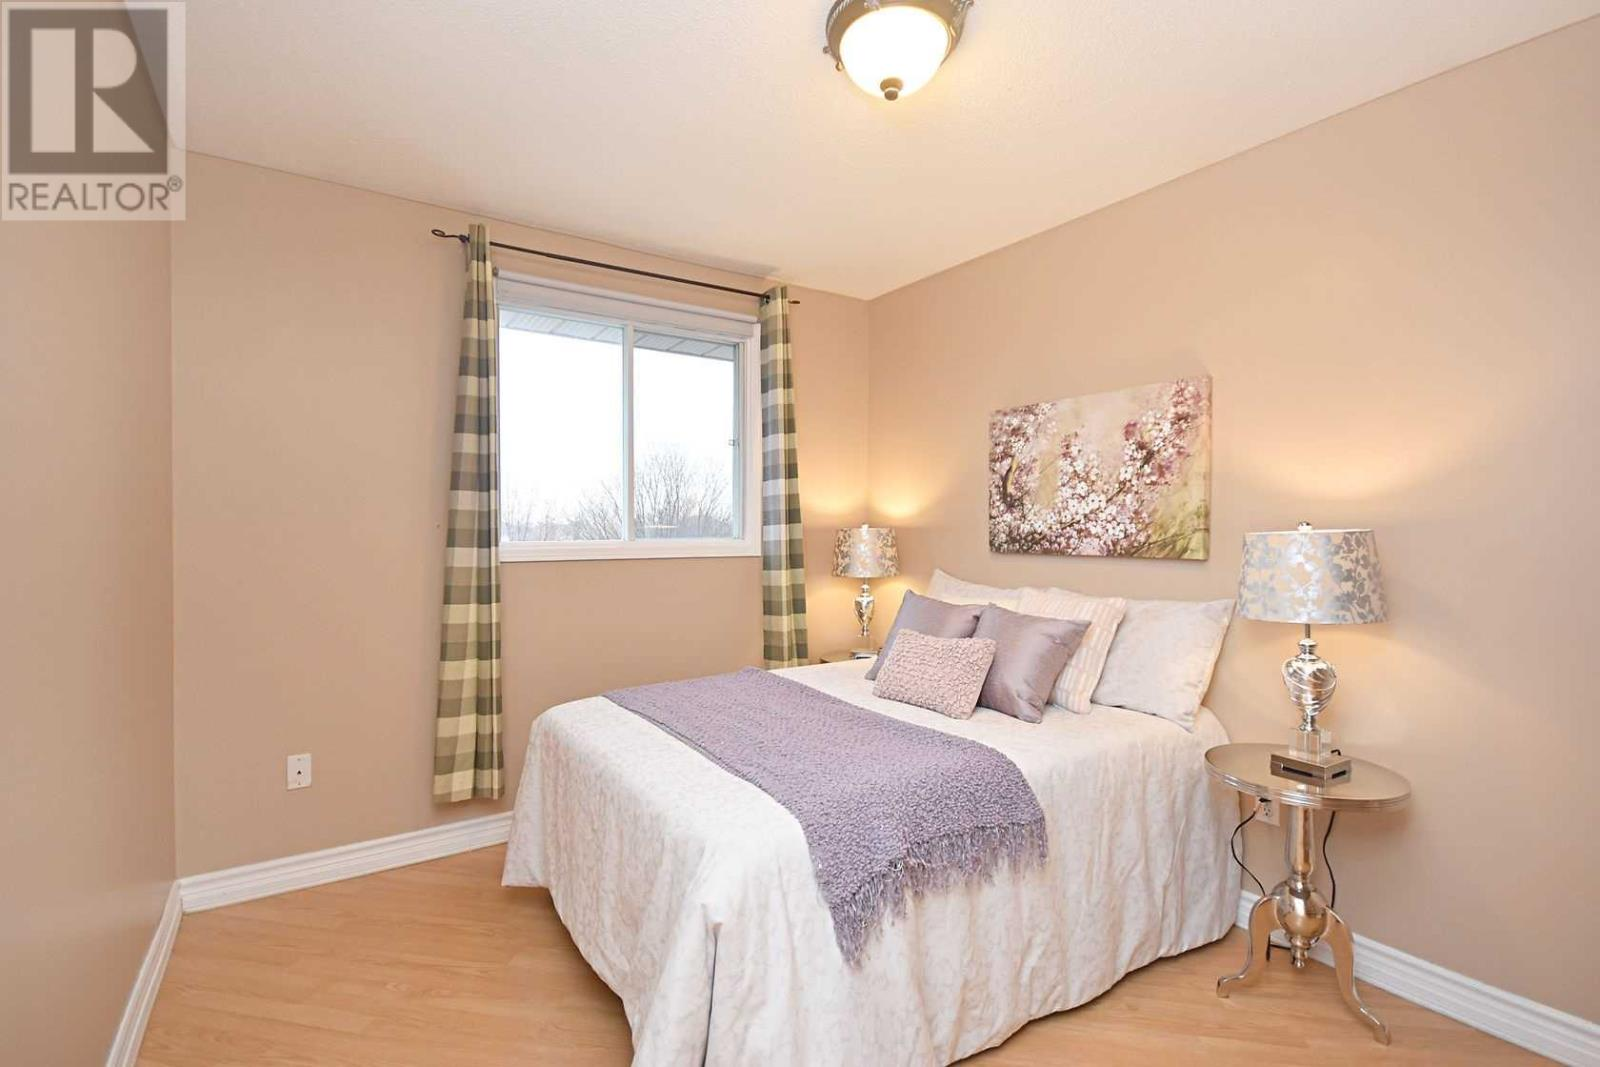 354 Howell Rd, Oakville, Ontario  L6H 5Y1 - Photo 9 - W4675254